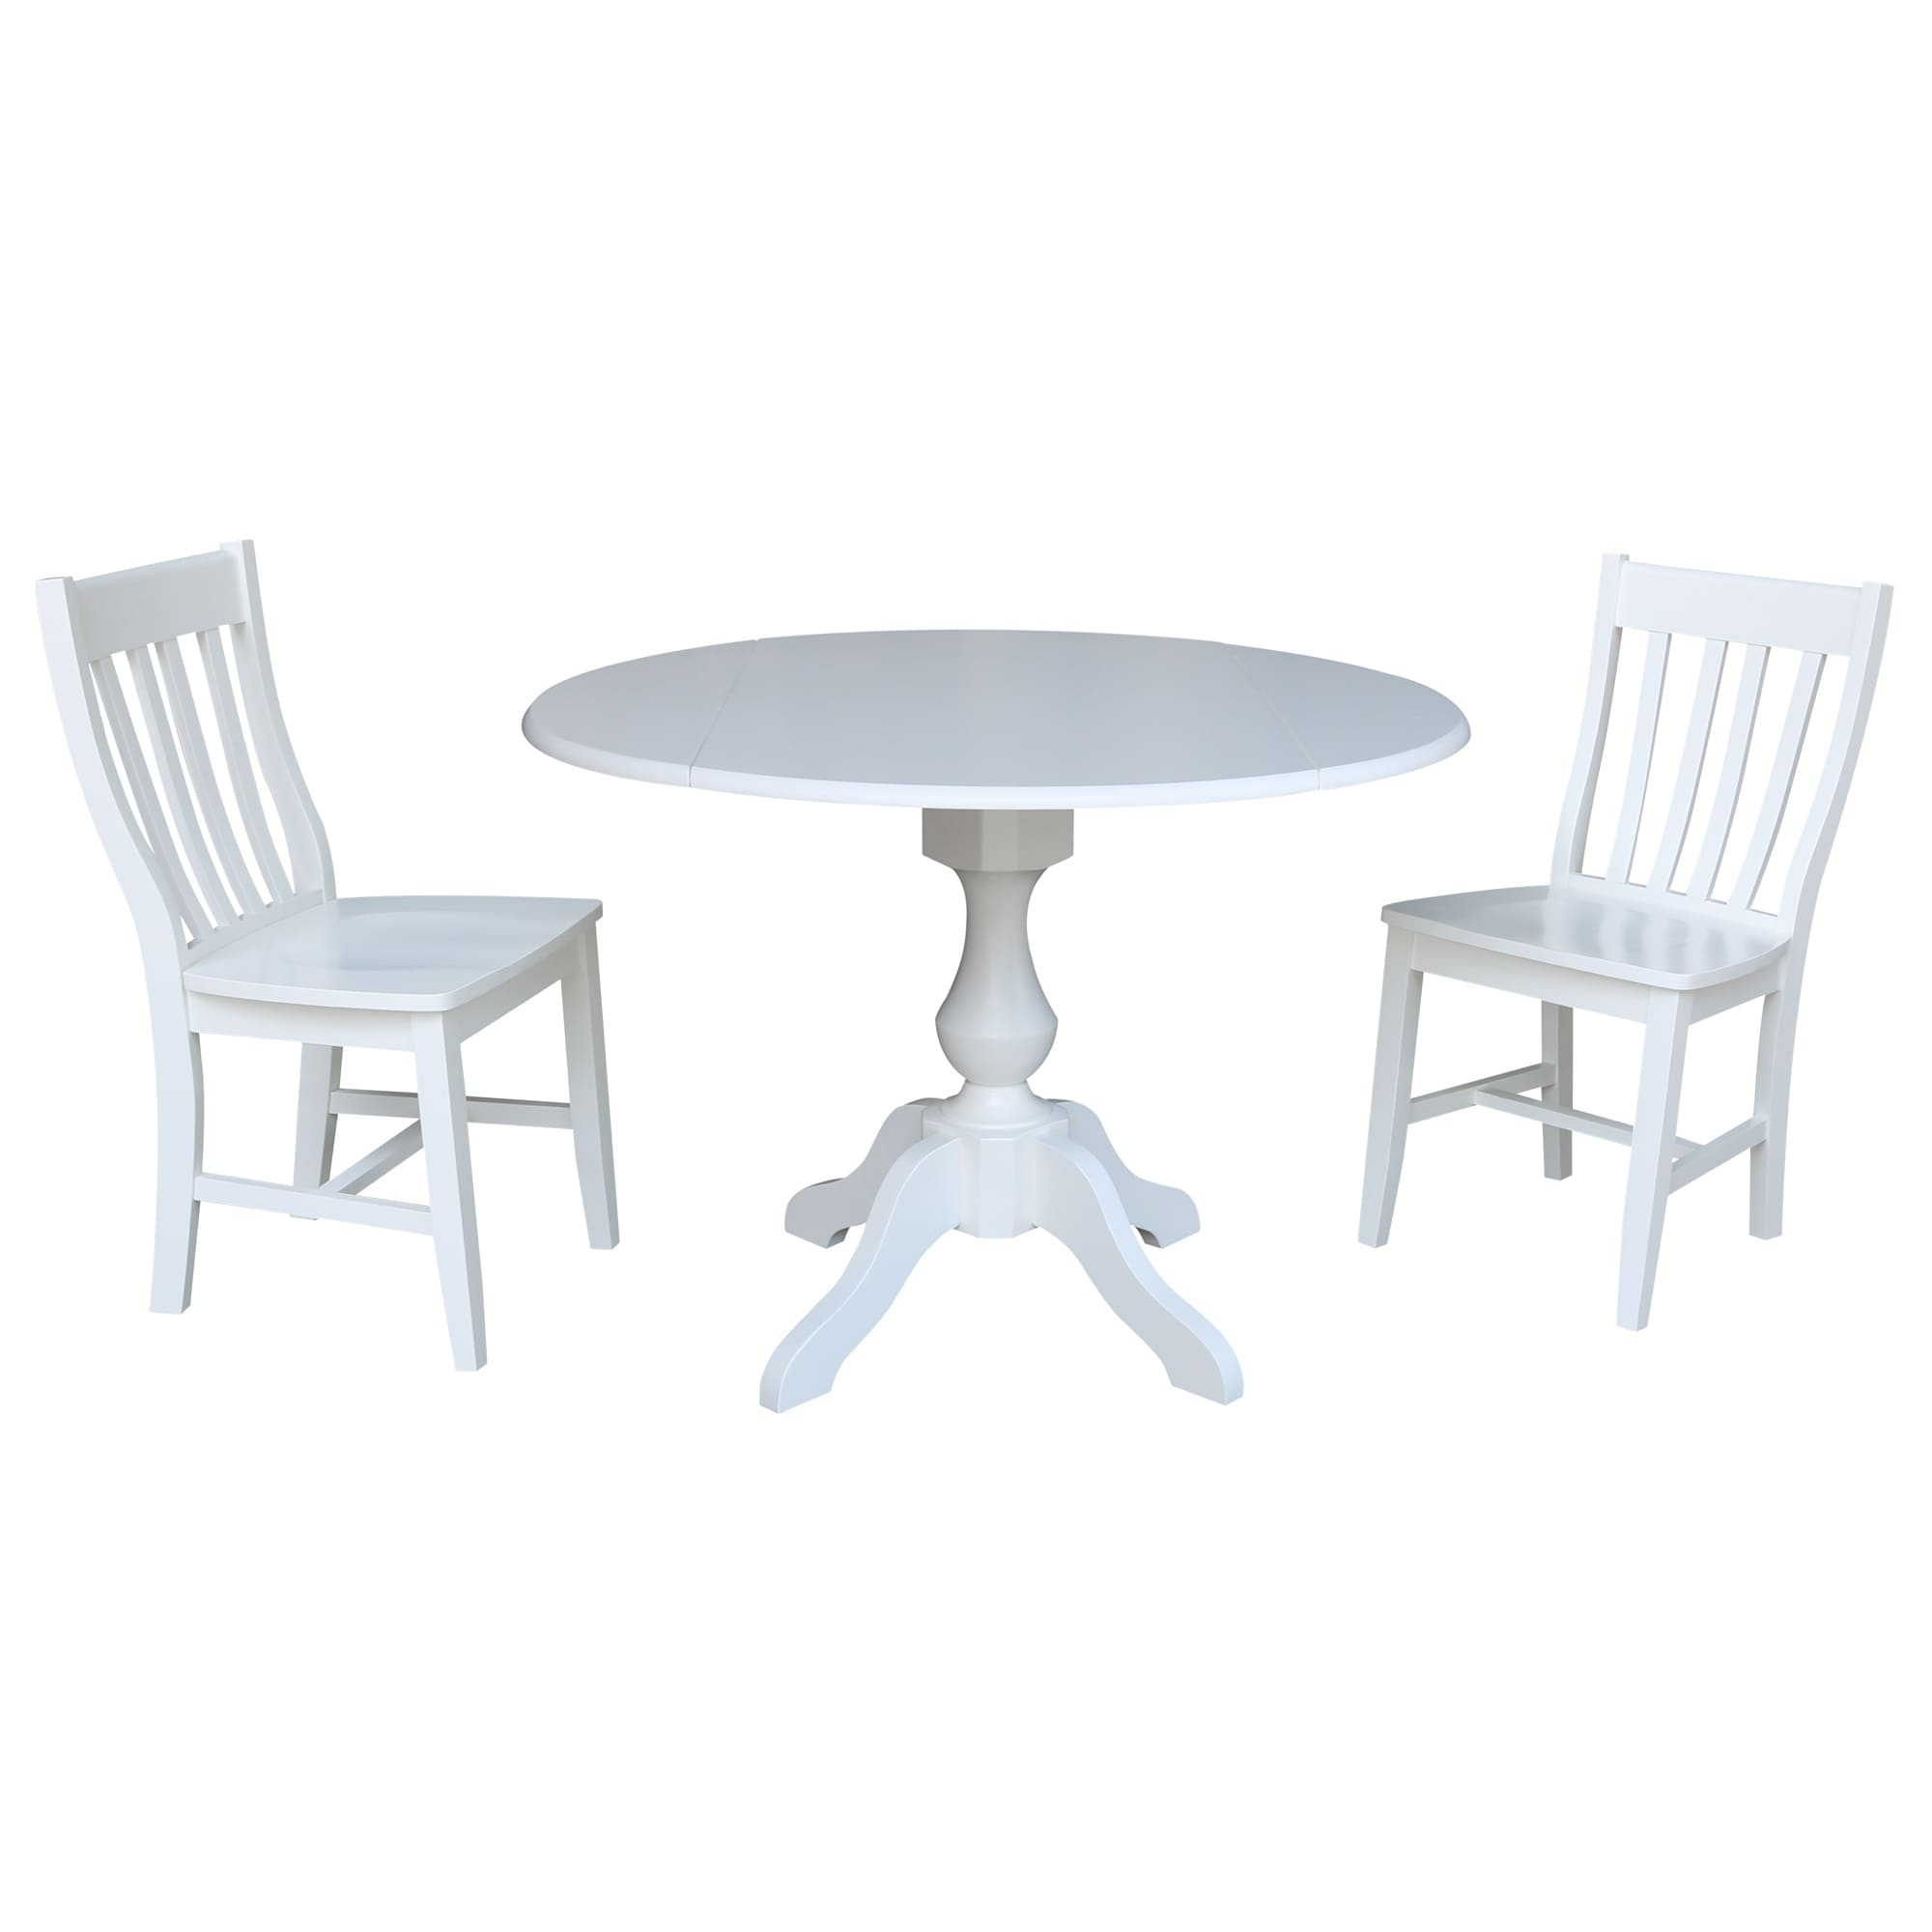 Super Details About 42 In Round Pedestal Drop Leaf Table With 2 Chairs White 3 Piece Sets Cjindustries Chair Design For Home Cjindustriesco